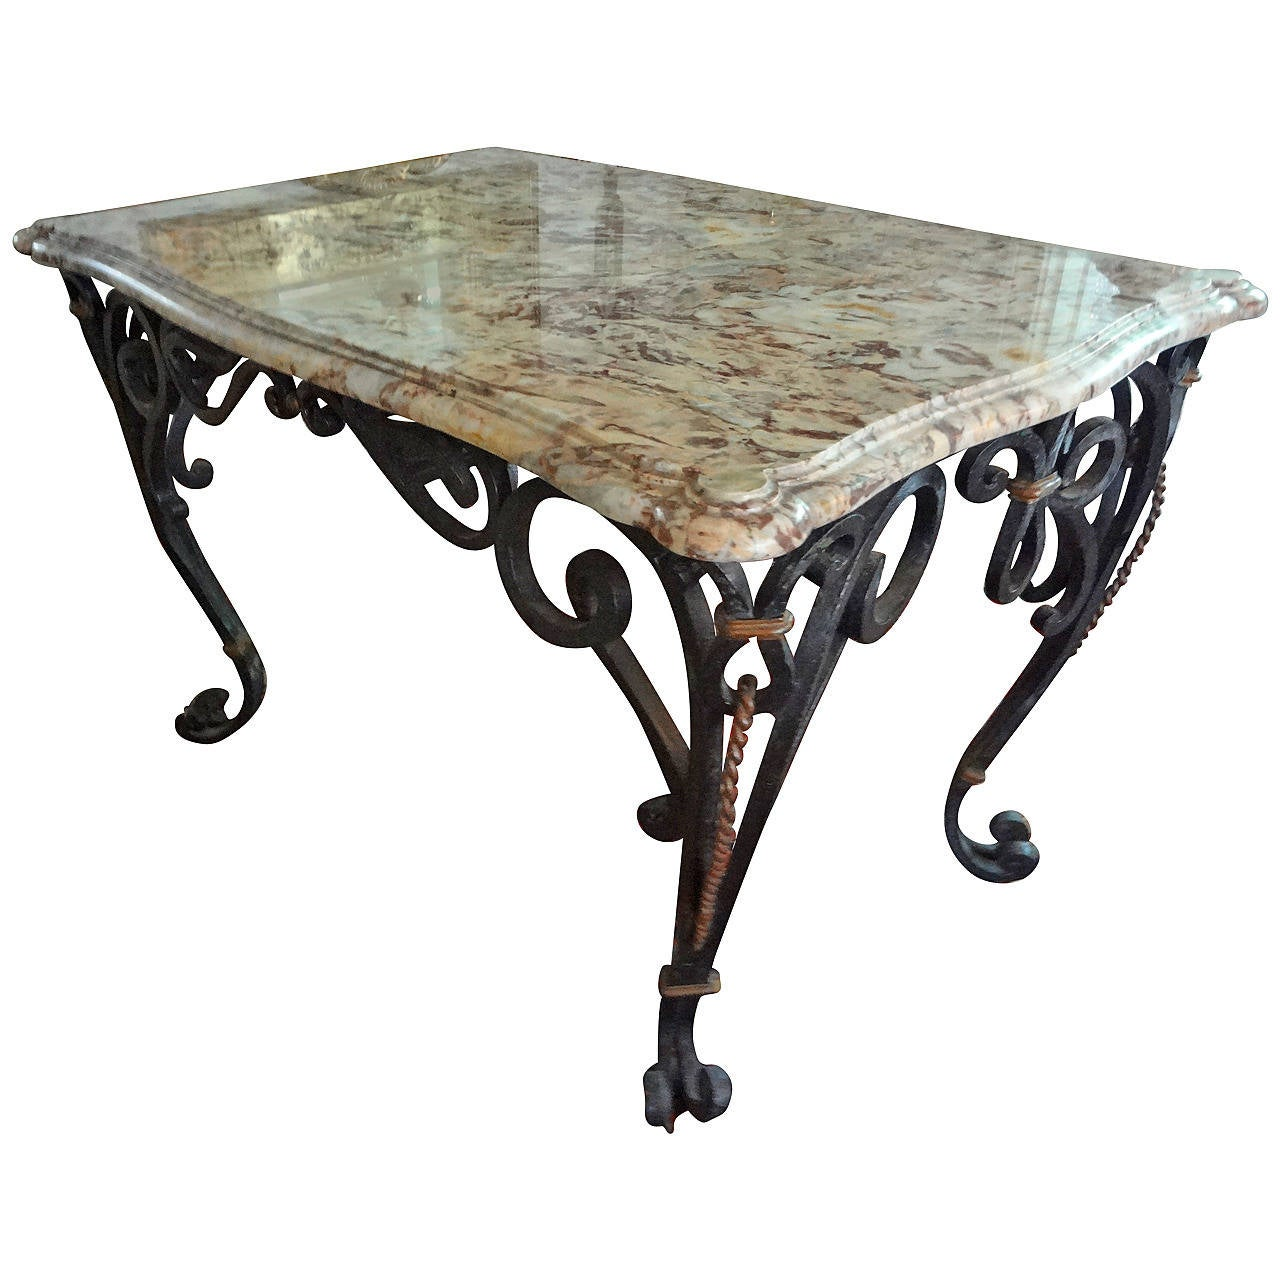 Poillerat Inspired French Rectangular Wrought Iron Center Table